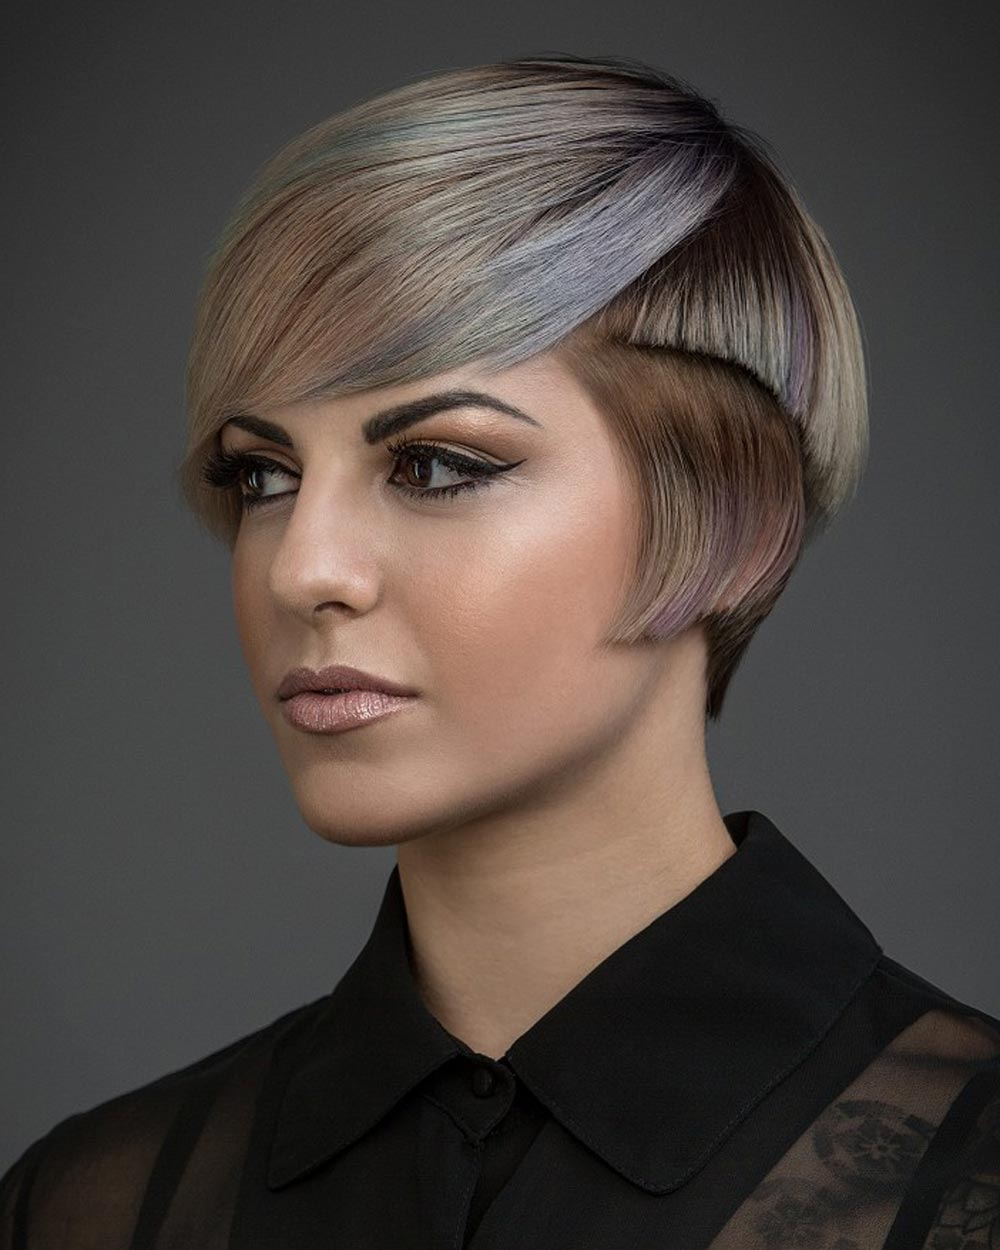 Short hair 2015  gallery of hairstyles for fallwinter  HAIR  HAIRSTYLES